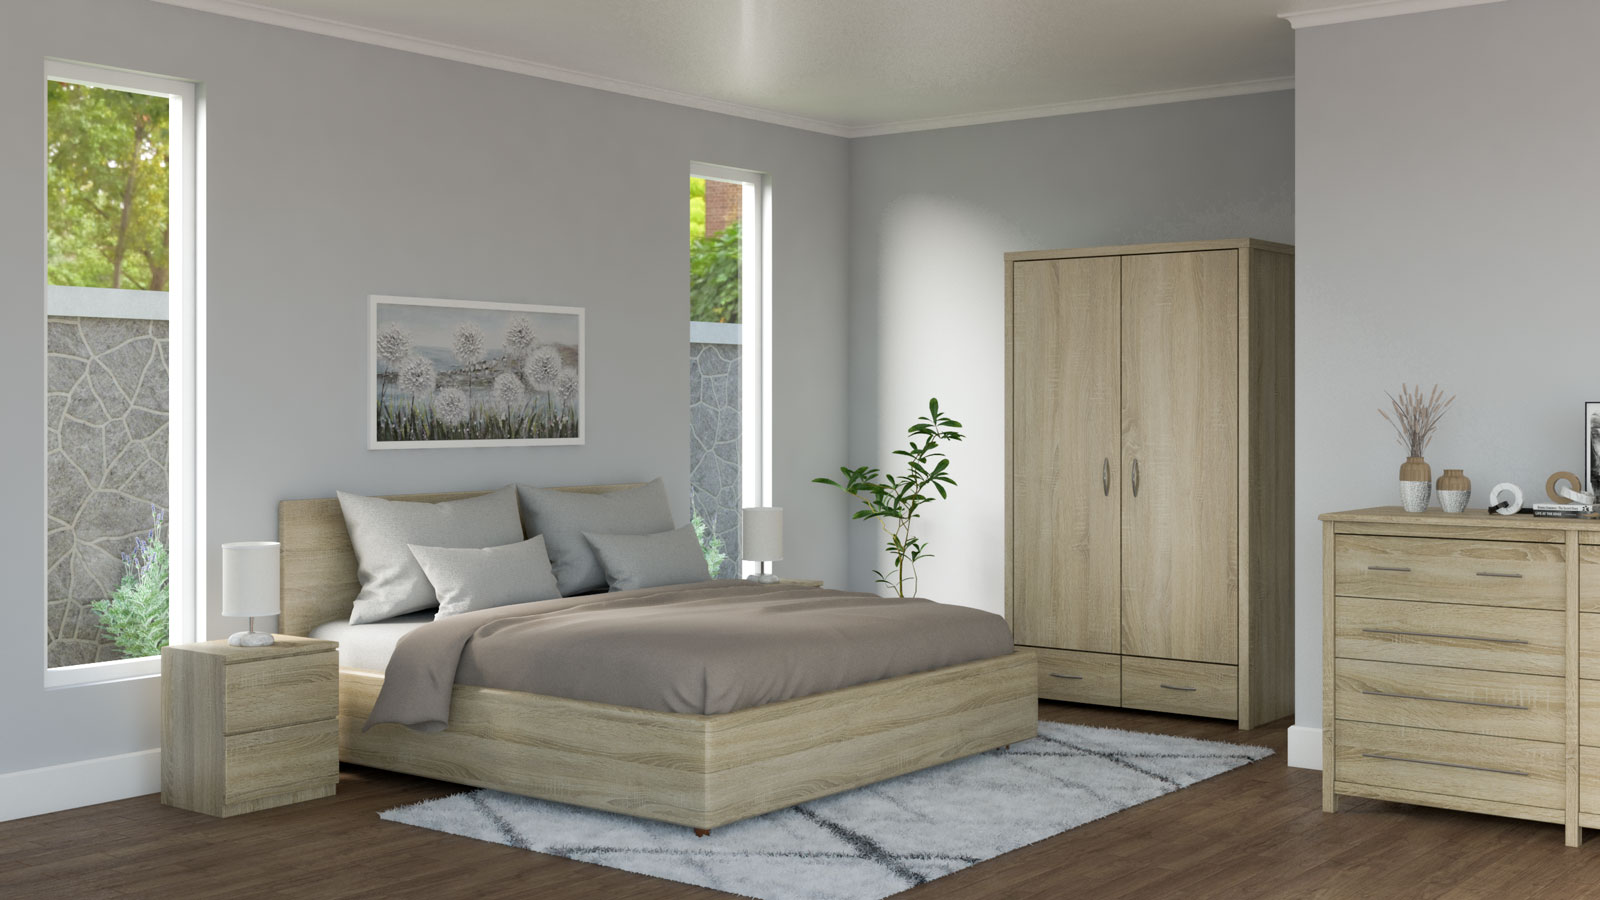 Gray and brown bedding with oak furniture